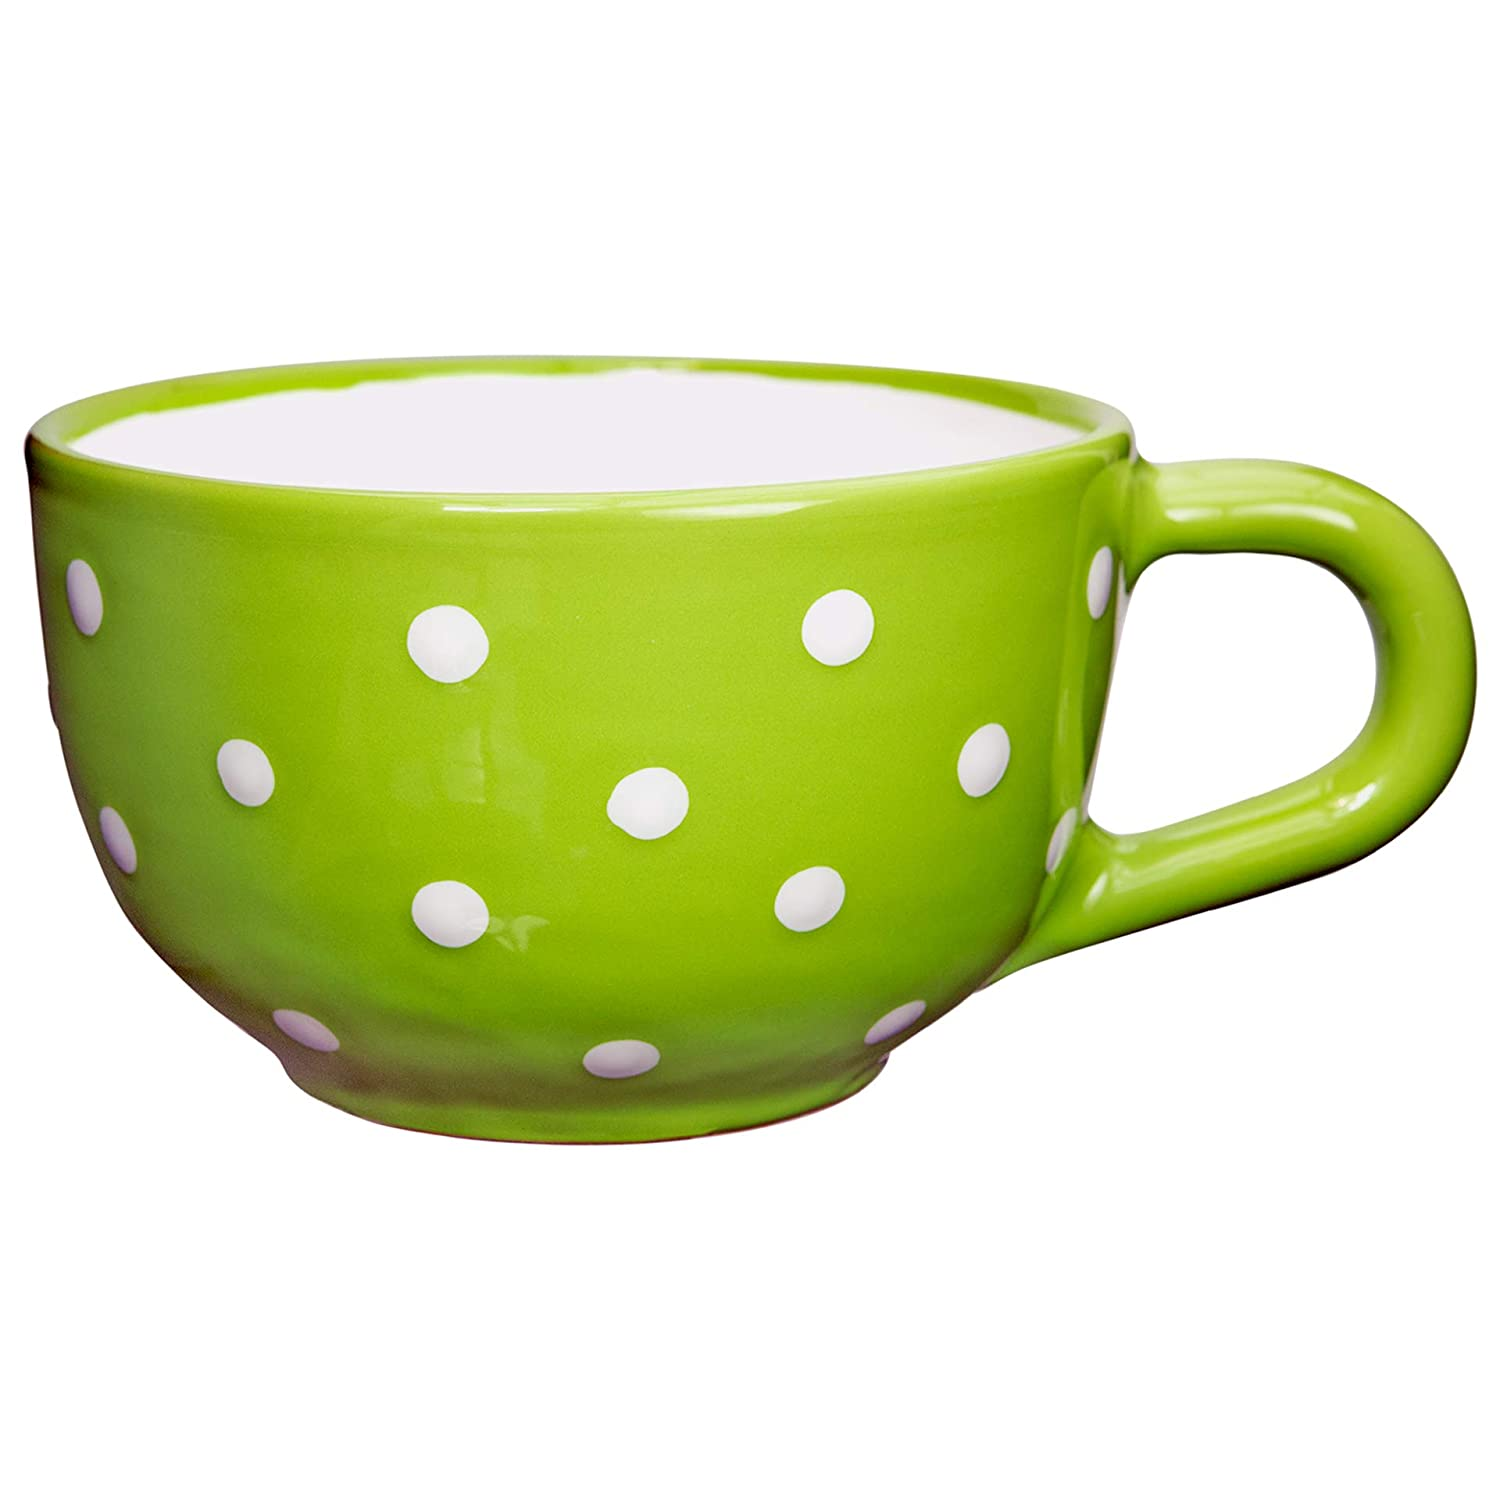 City to Cottage Lime Green and White | Polka Dot Spotty | Designer Handmade Hand Painted | Unique Ceramic Extra Large 17.5oz/500ml | Cappuccino Coffee Tea Soup Mugs Cups with Handle | Gift citytocottage.co.uk